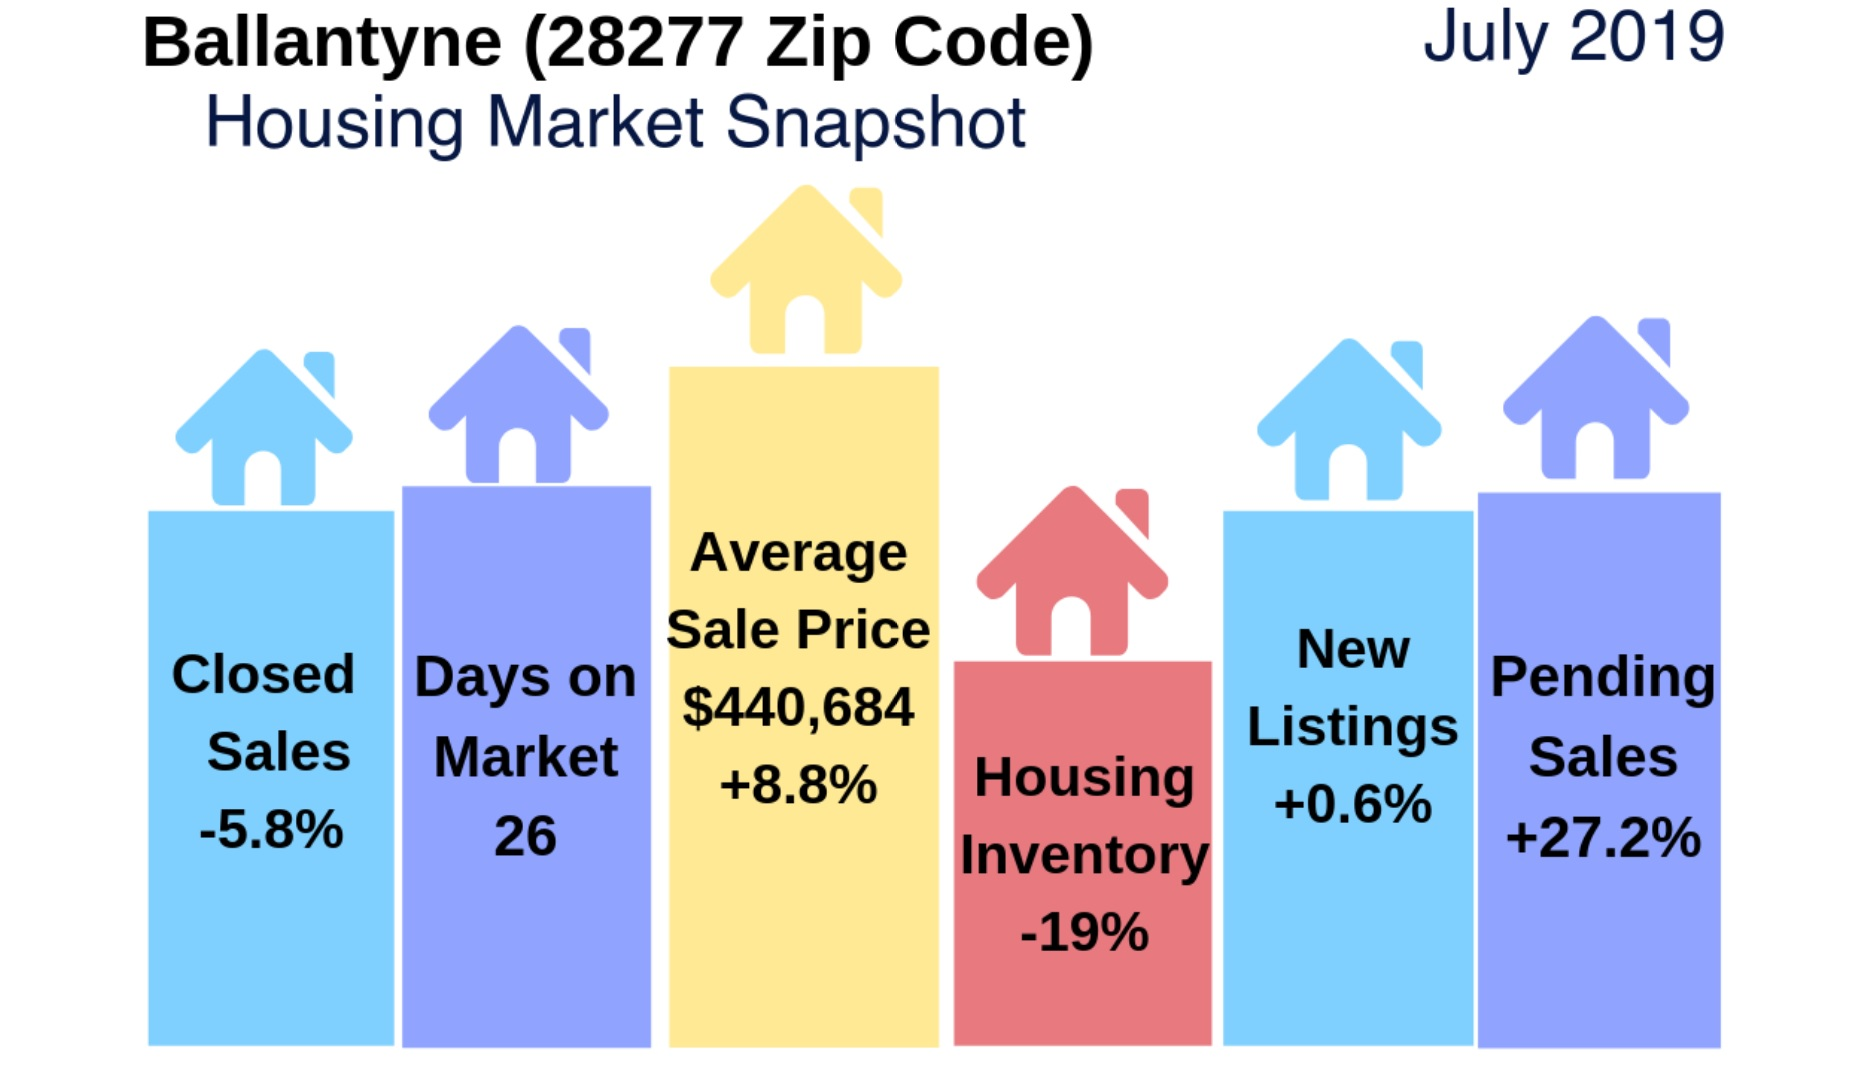 Ballantyne (28277 Zip Code) Real Estate Report: August 2019